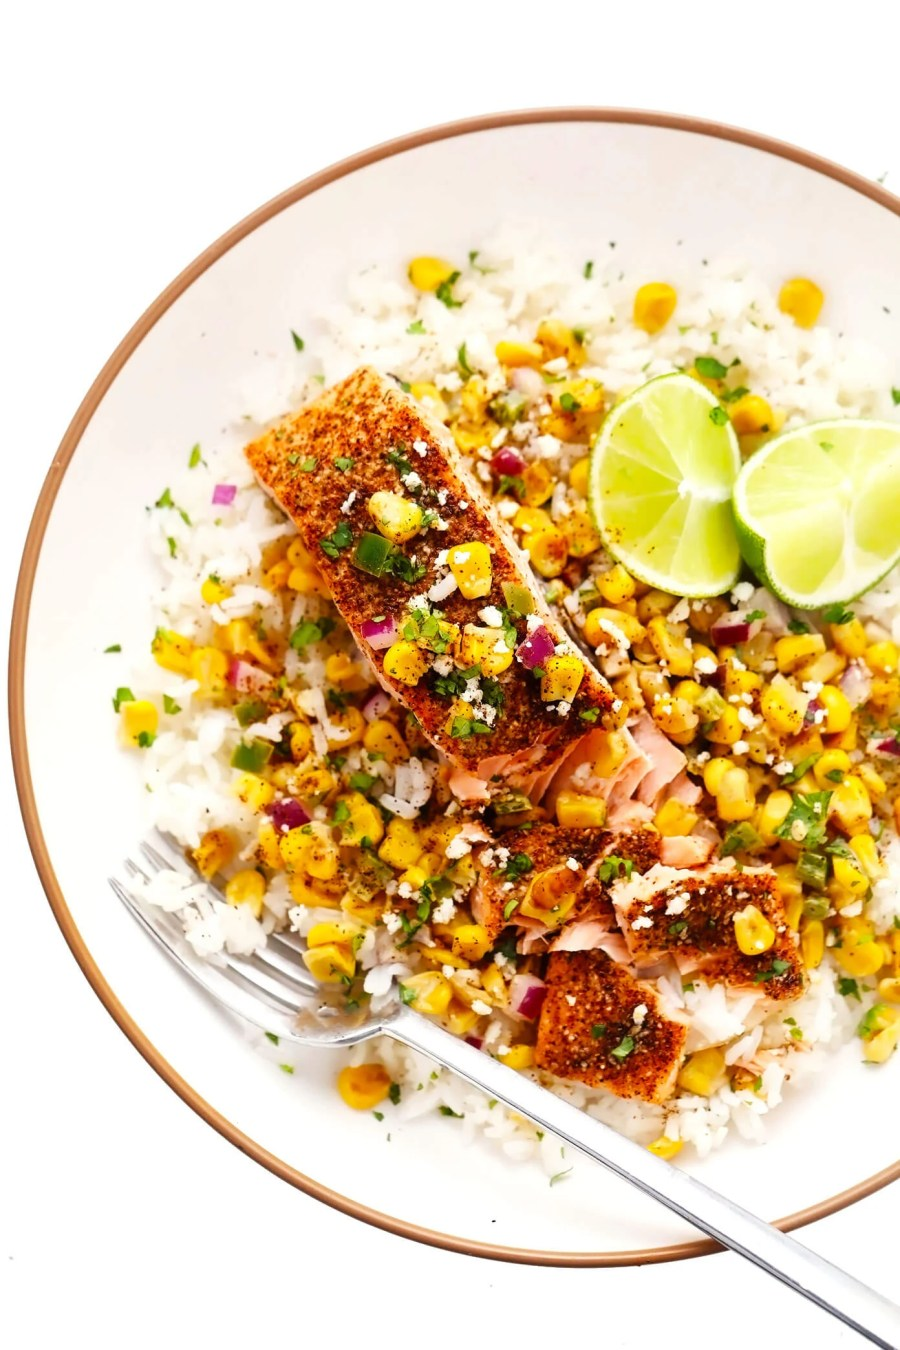 Chili Lime Salmon with Esquites